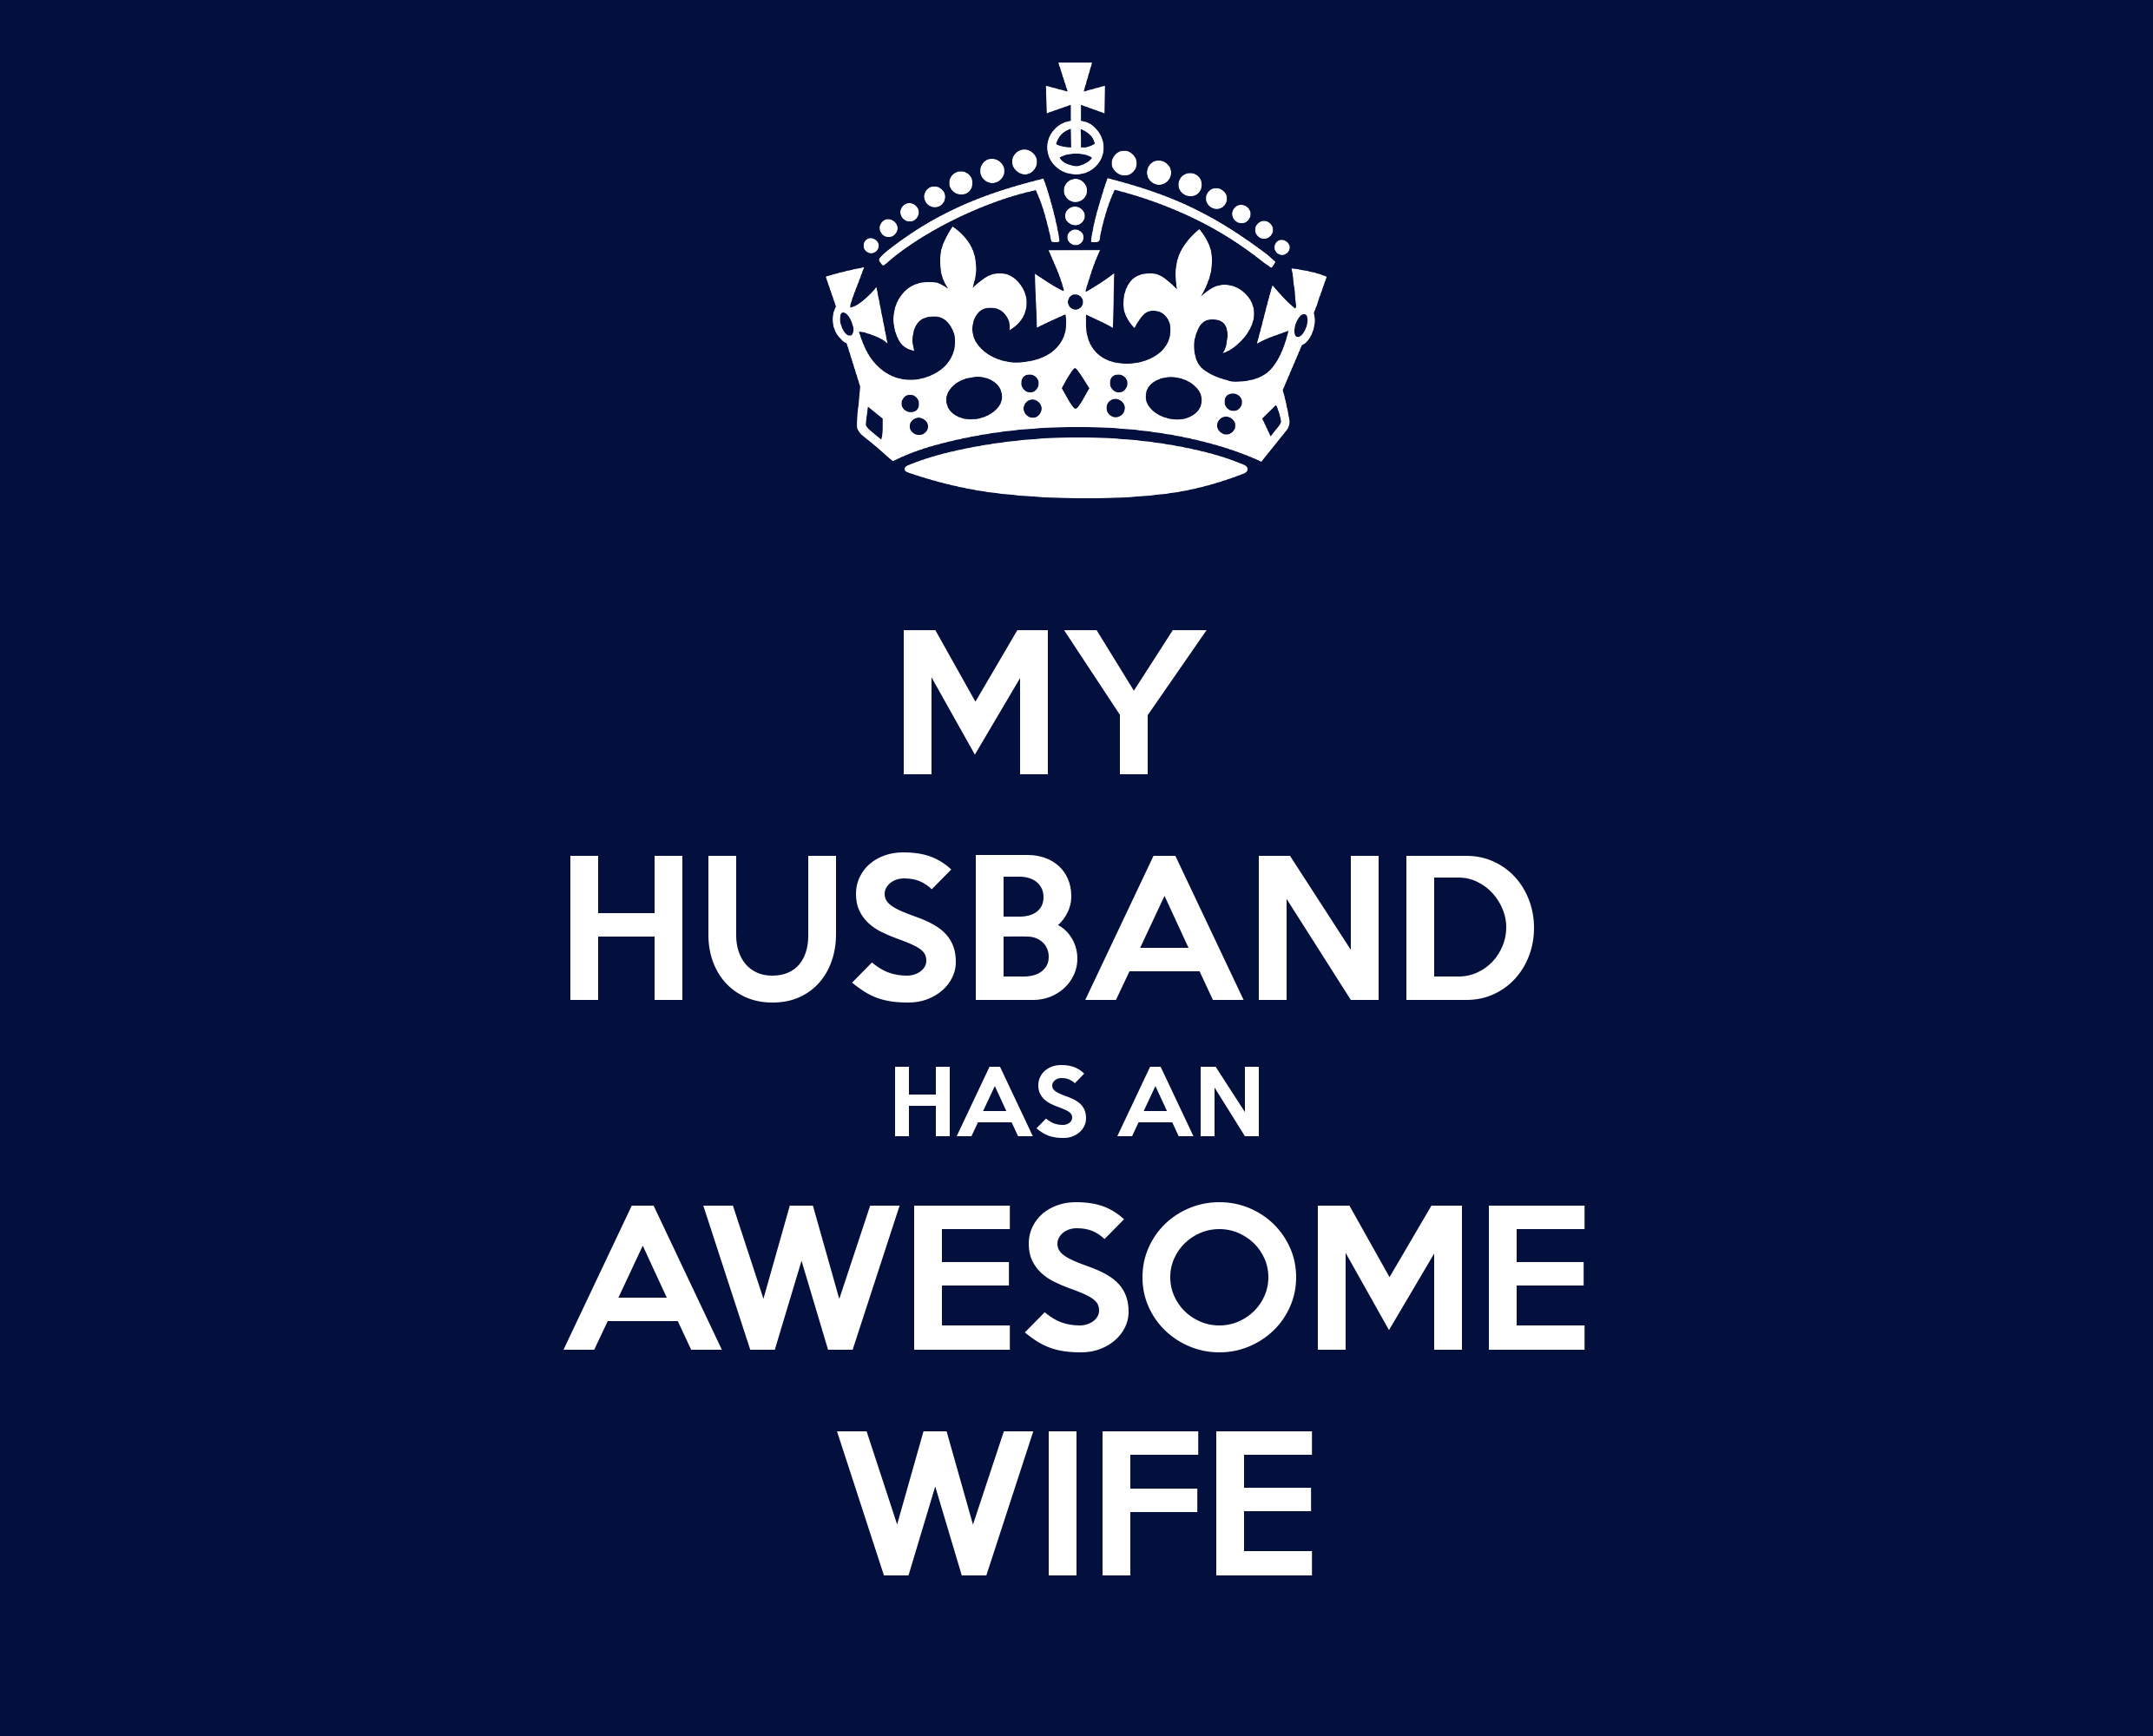 My Husband Has An Awesome Wife Funny Pictures For Facebook Happy Wife Memories Quotes